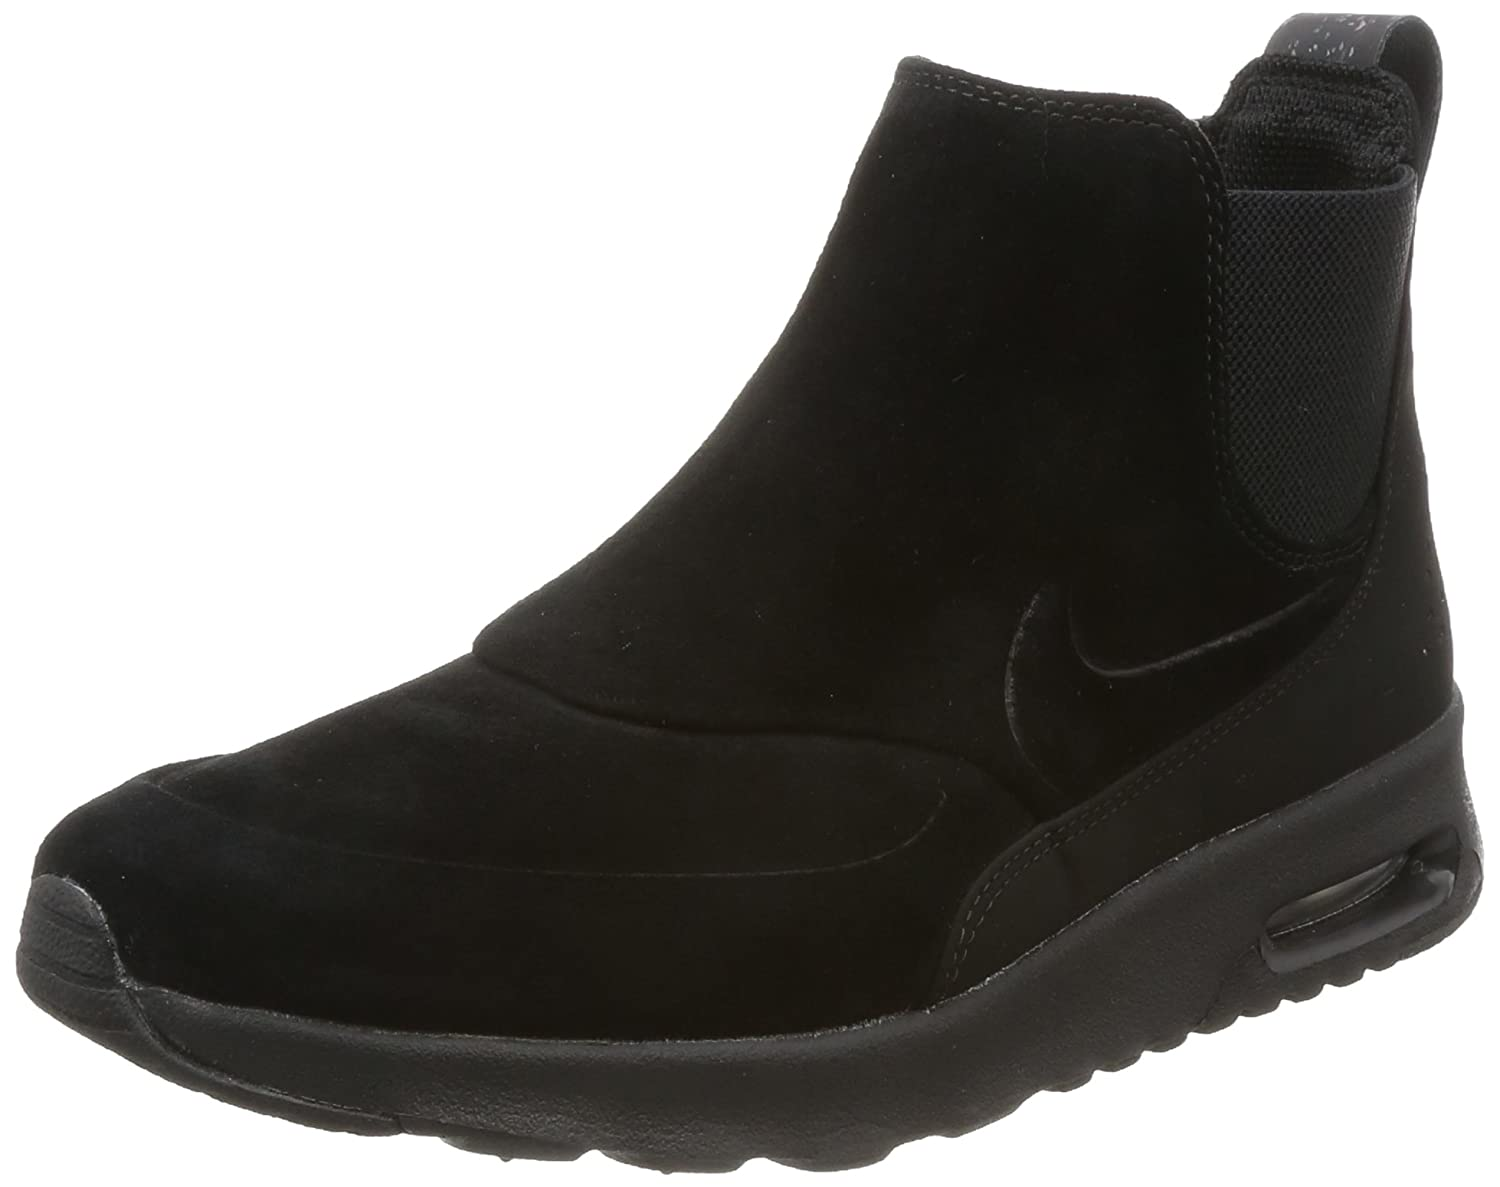 Details about Nike Air Max Thea Mid Suede Women's Lifestyle Shoes 859550 002, Triple Black